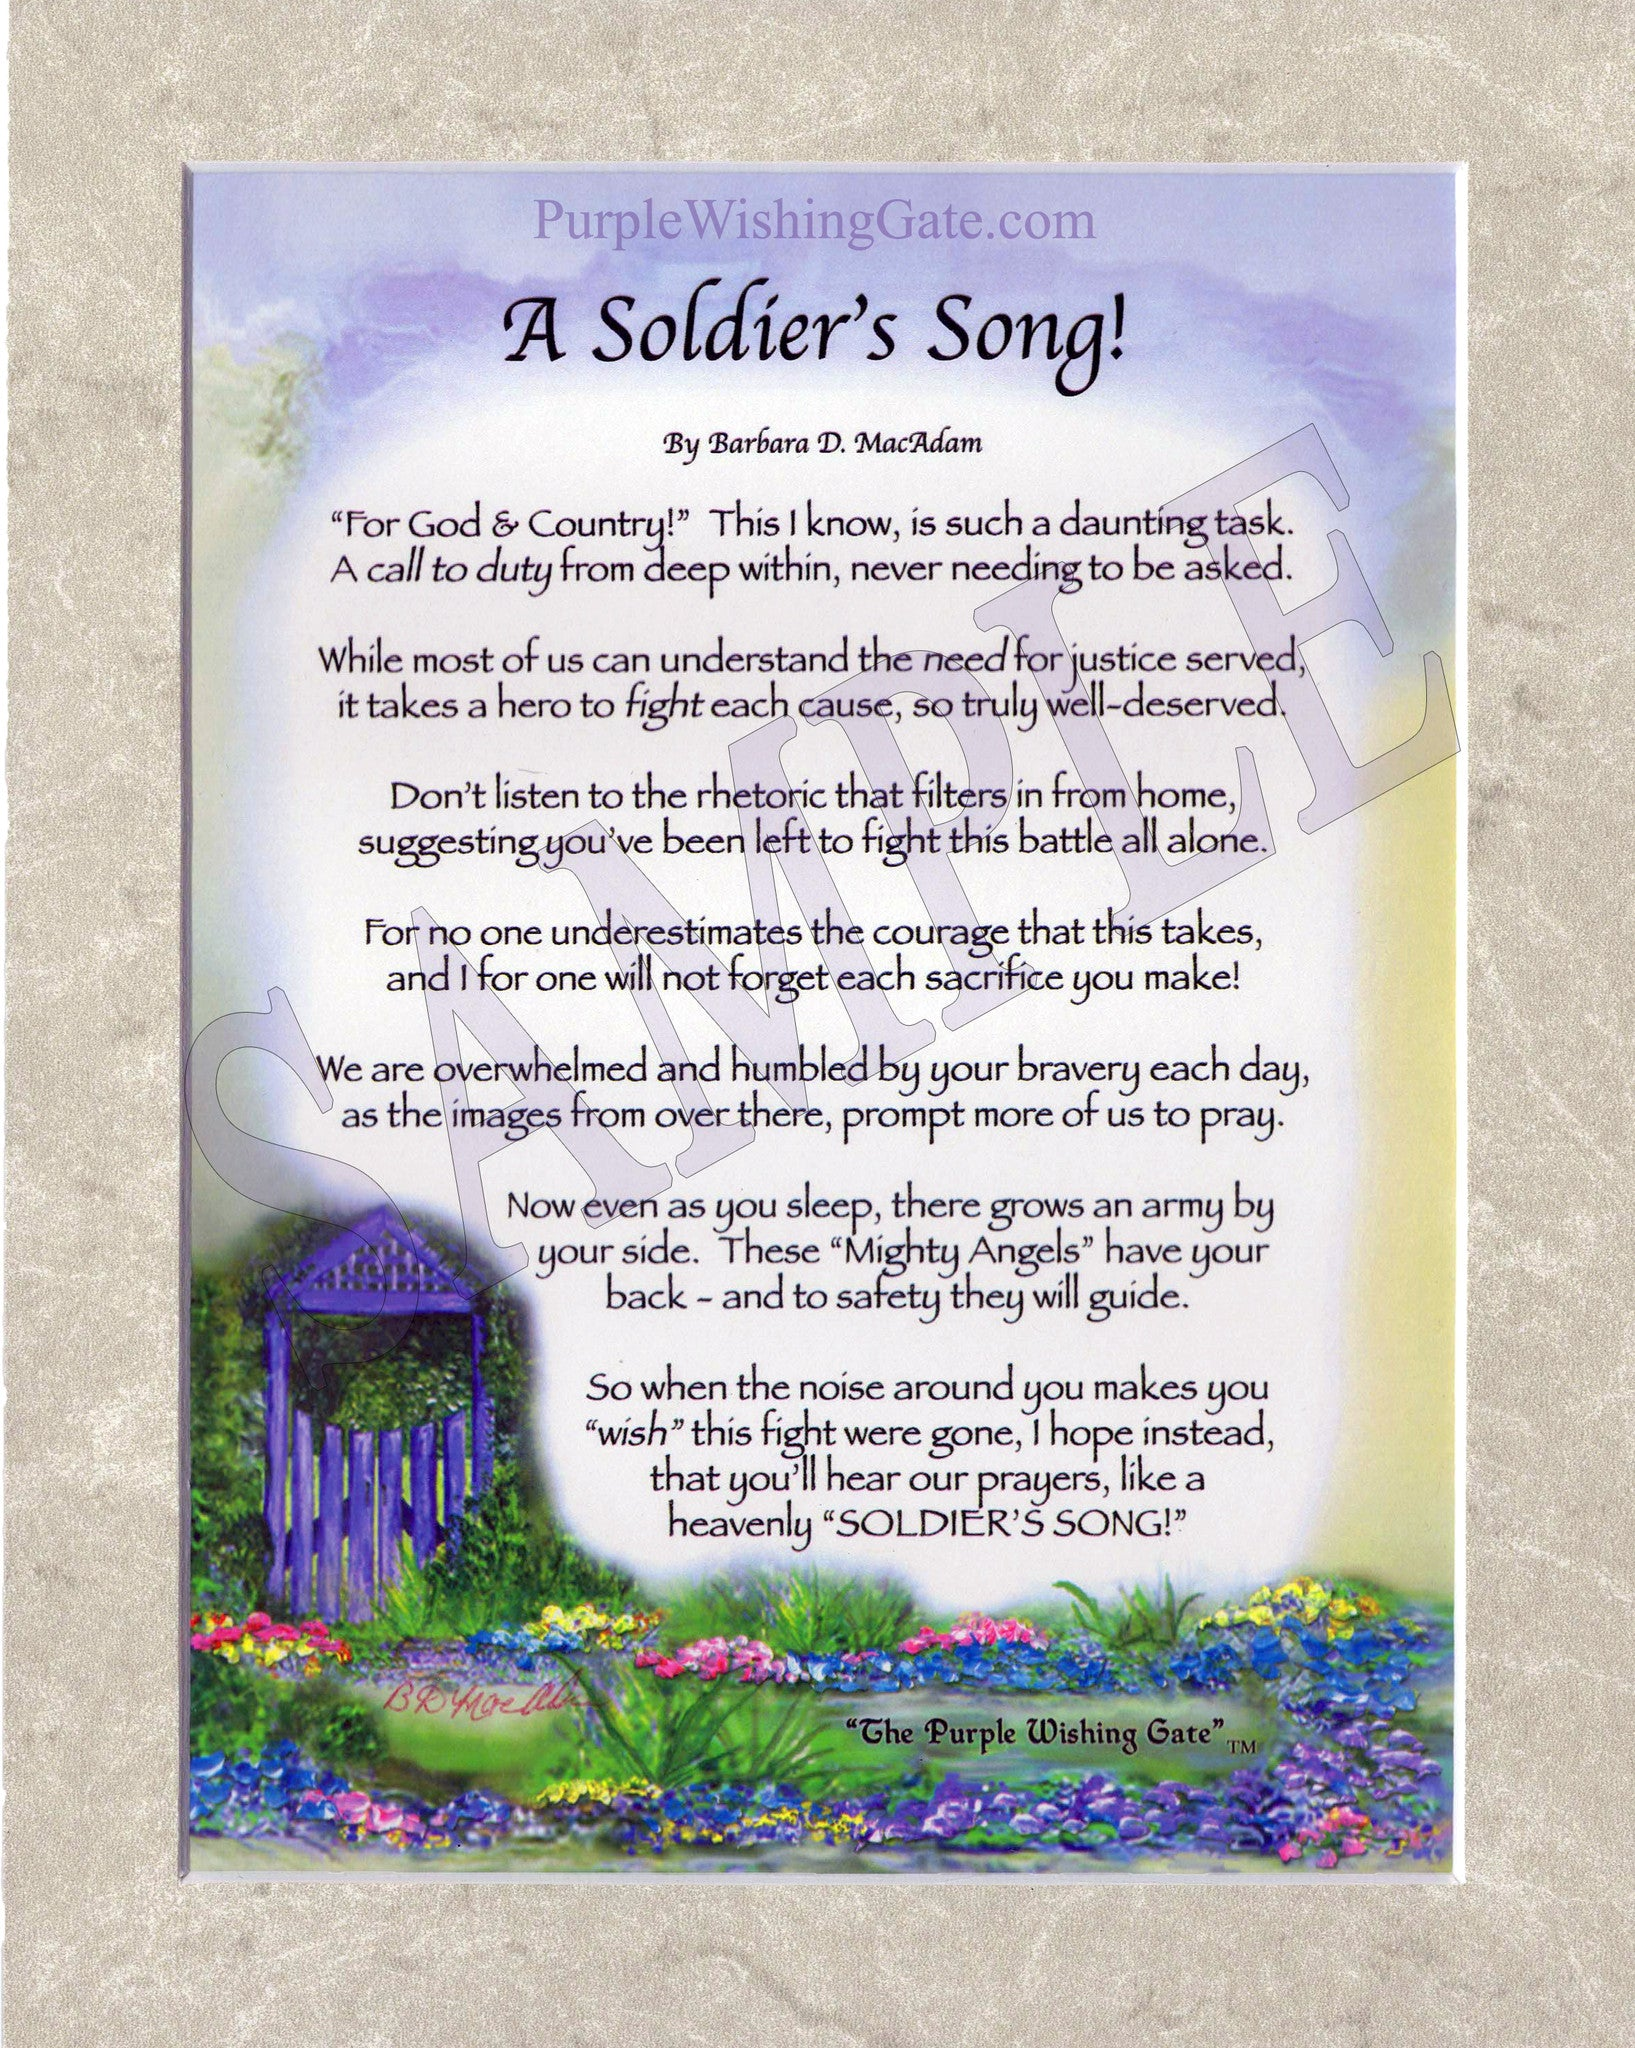 A Soldier's Song (8x10) - 8x10 Custom Matted Clearance - PurpleWishingGate.com